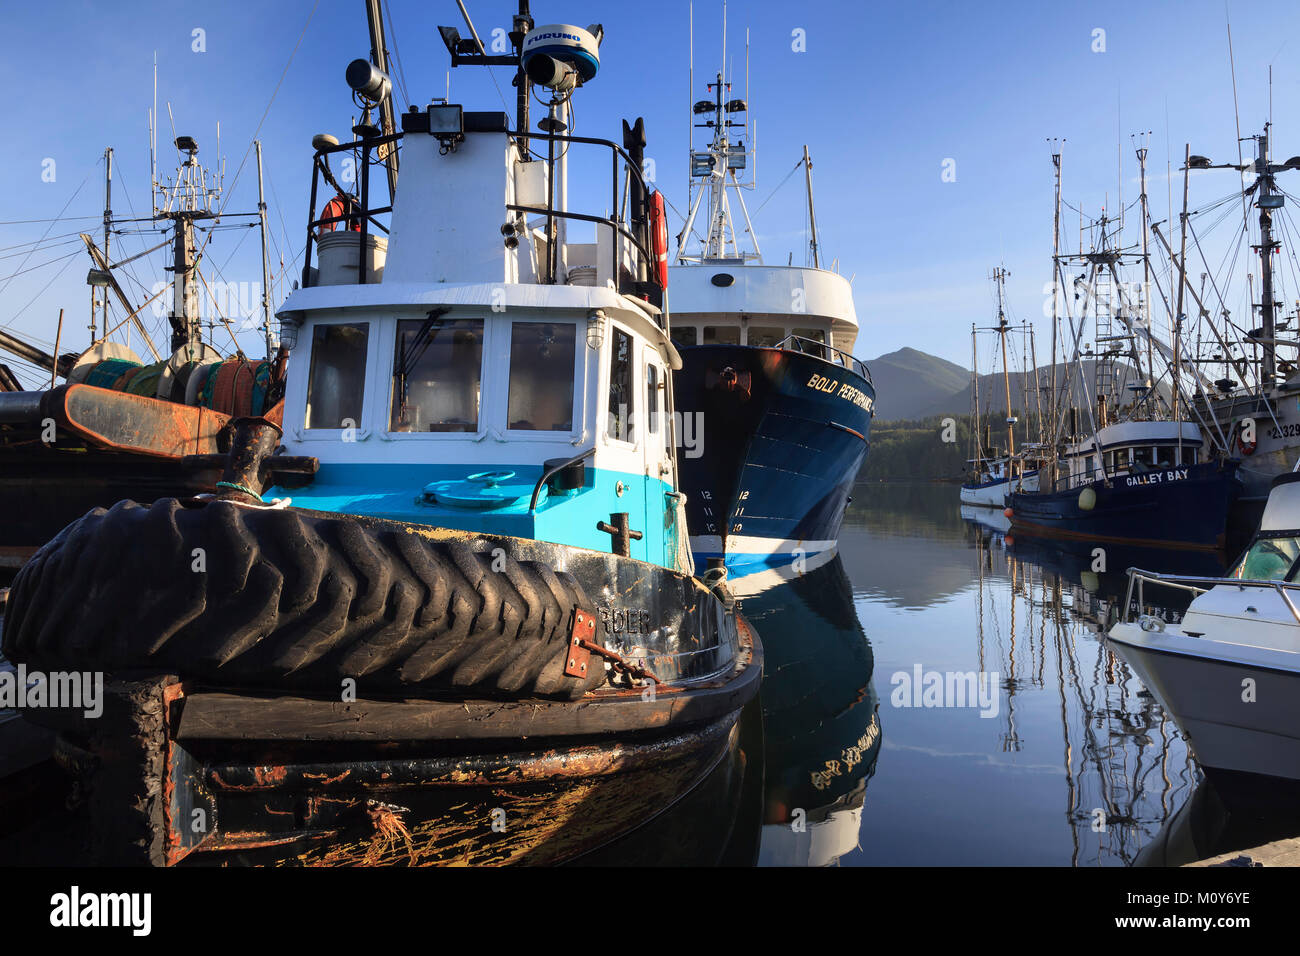 Tug and fishing boats, Ucluelet Harbour, Vancouver Island, British Columbia, Canada. - Stock Image